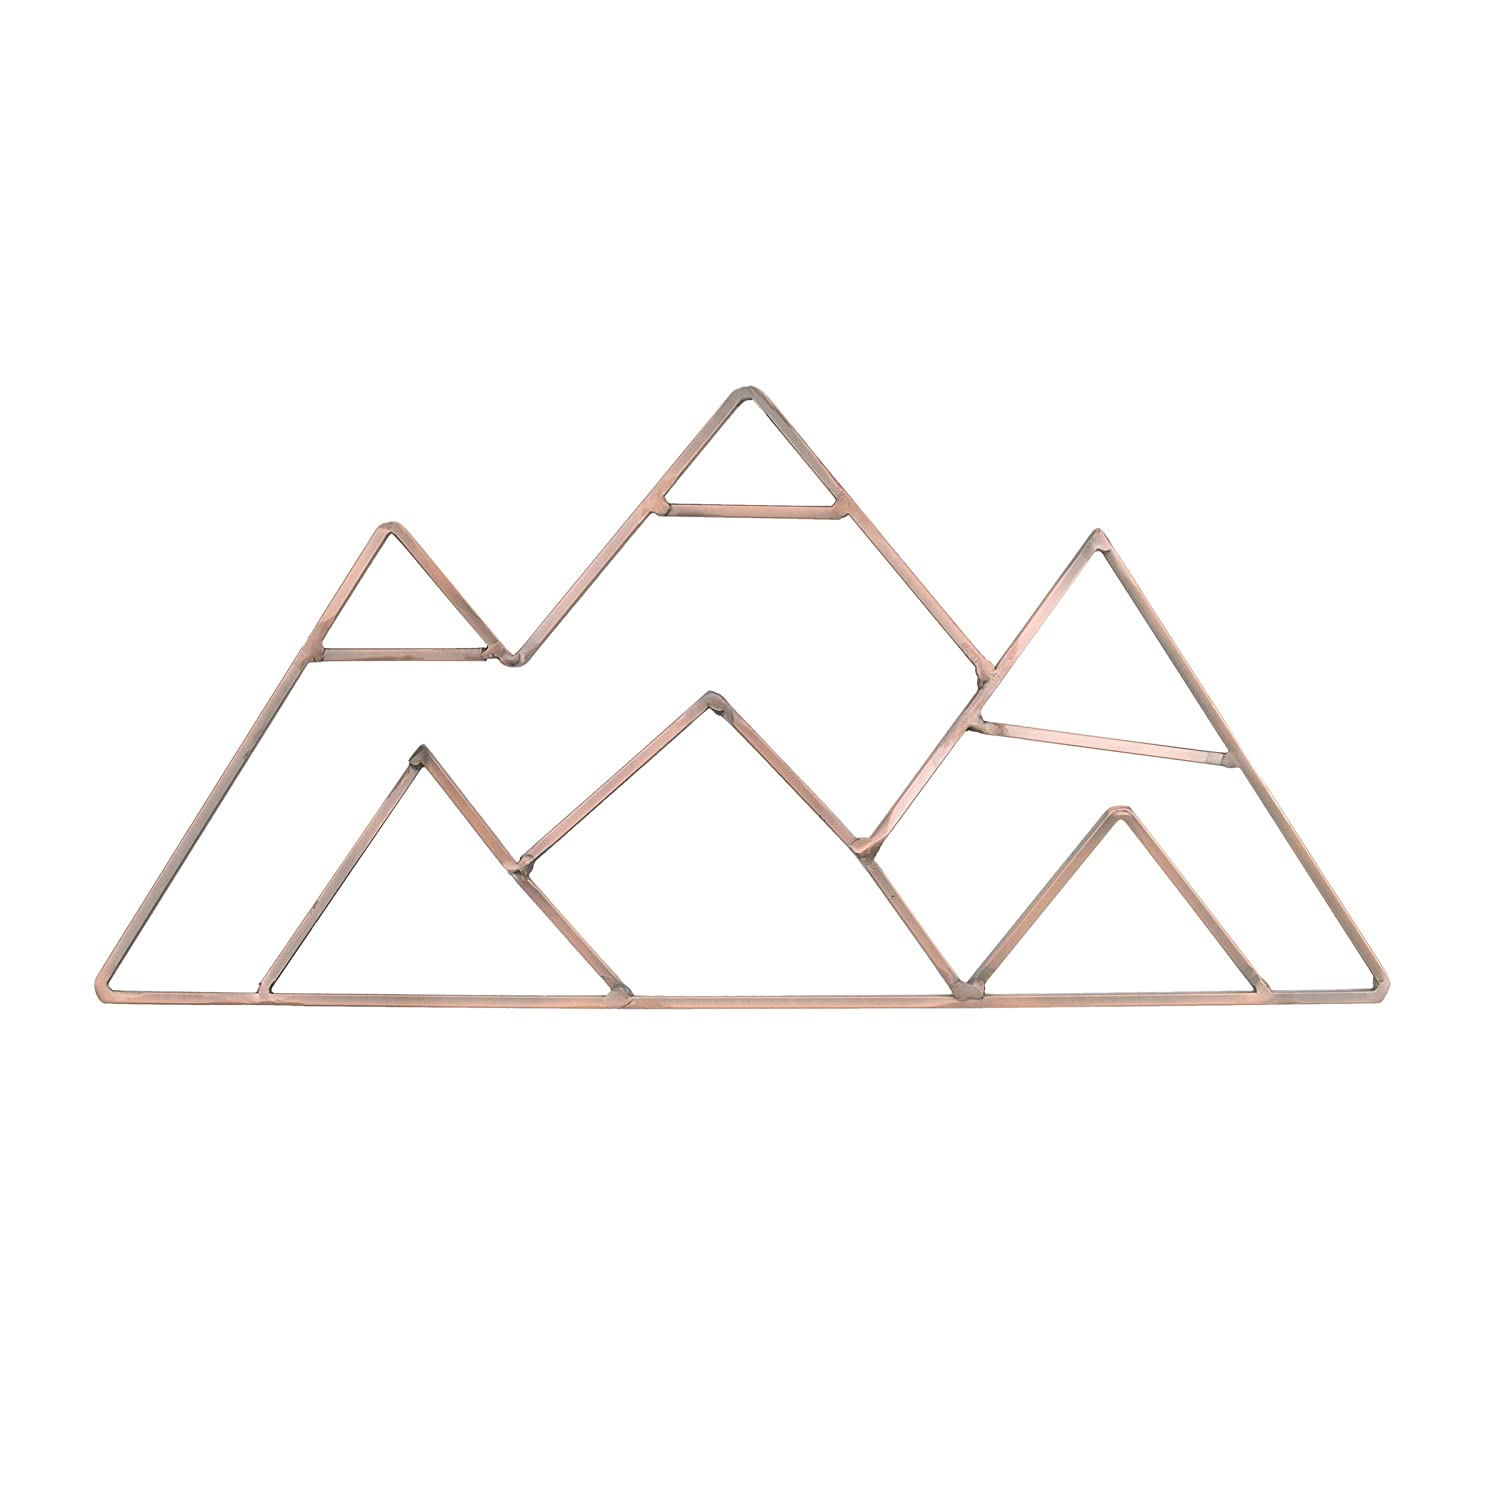 NoJo Mountain Shaped Wire Nursery Wall Decor, Finish, Copper, Mountain Shaped - Copper Finish (3098961P)